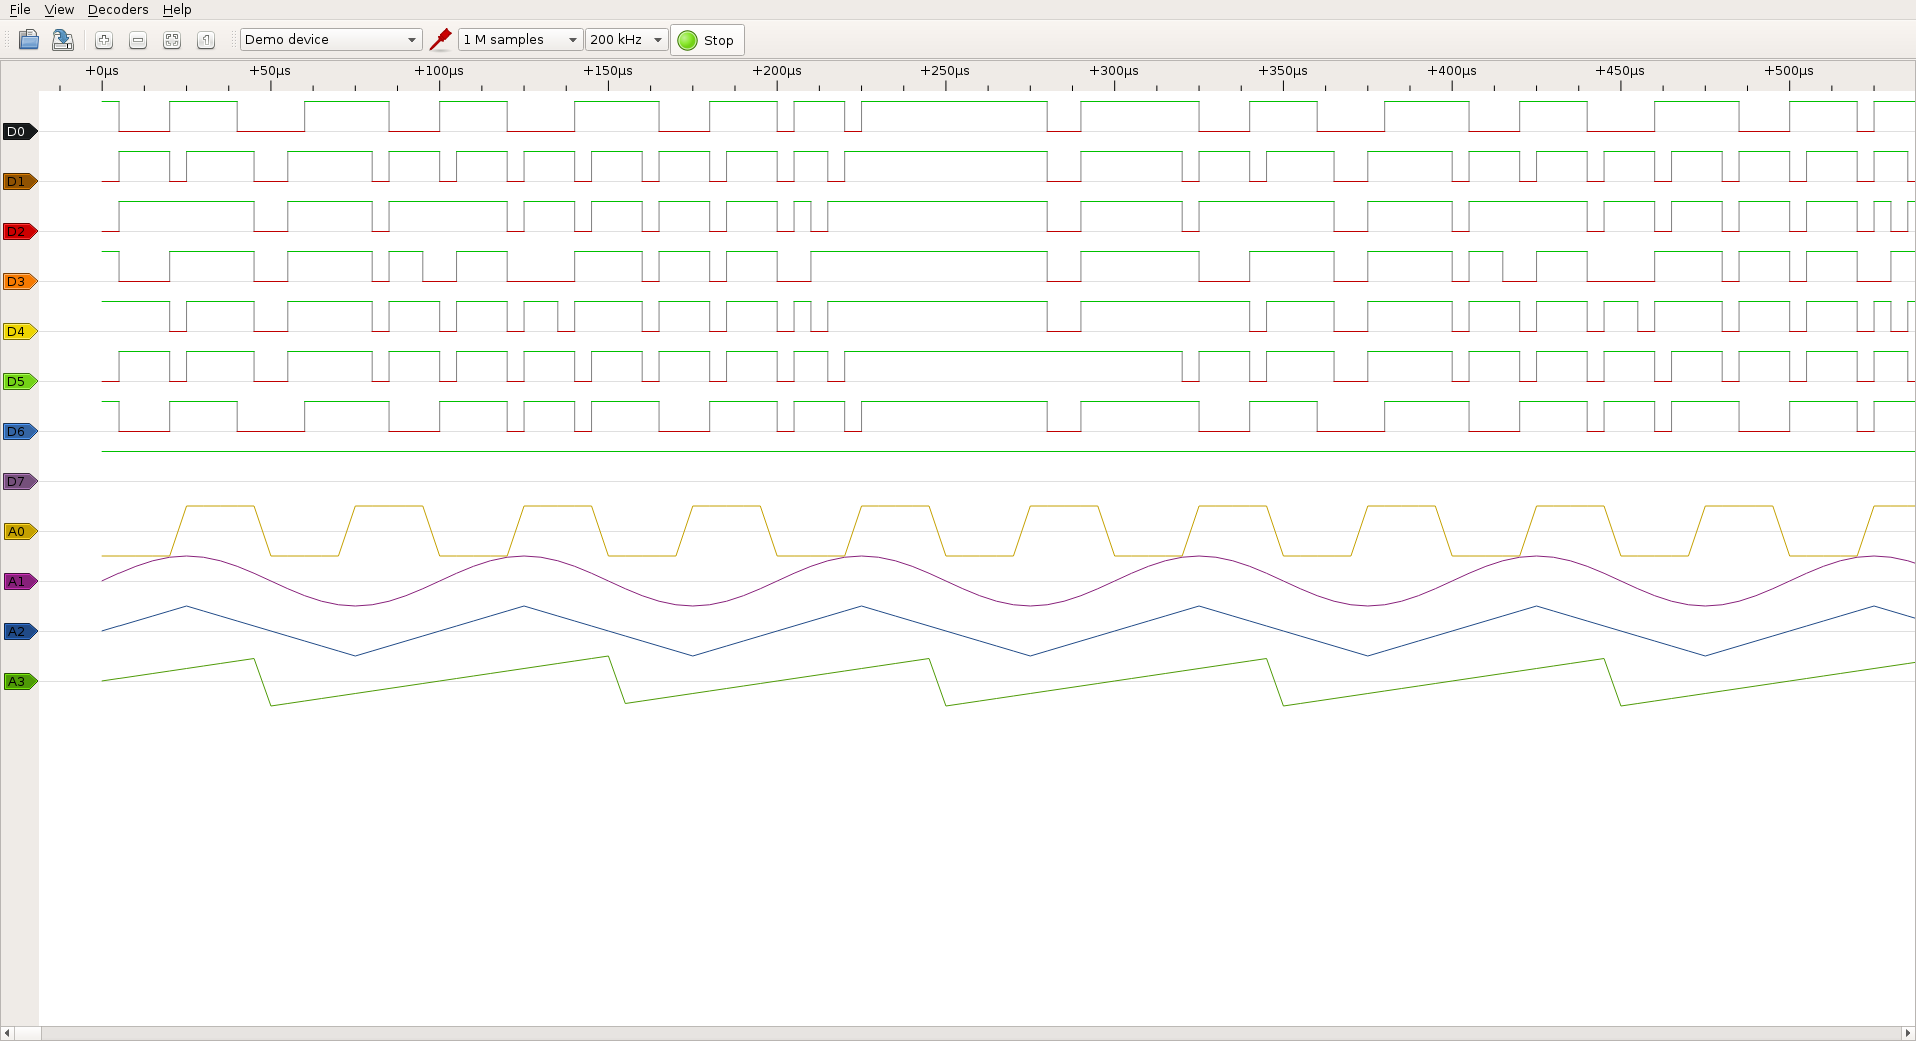 logic analyzer  visualizing latency between two digital signals in real time with sigrok and